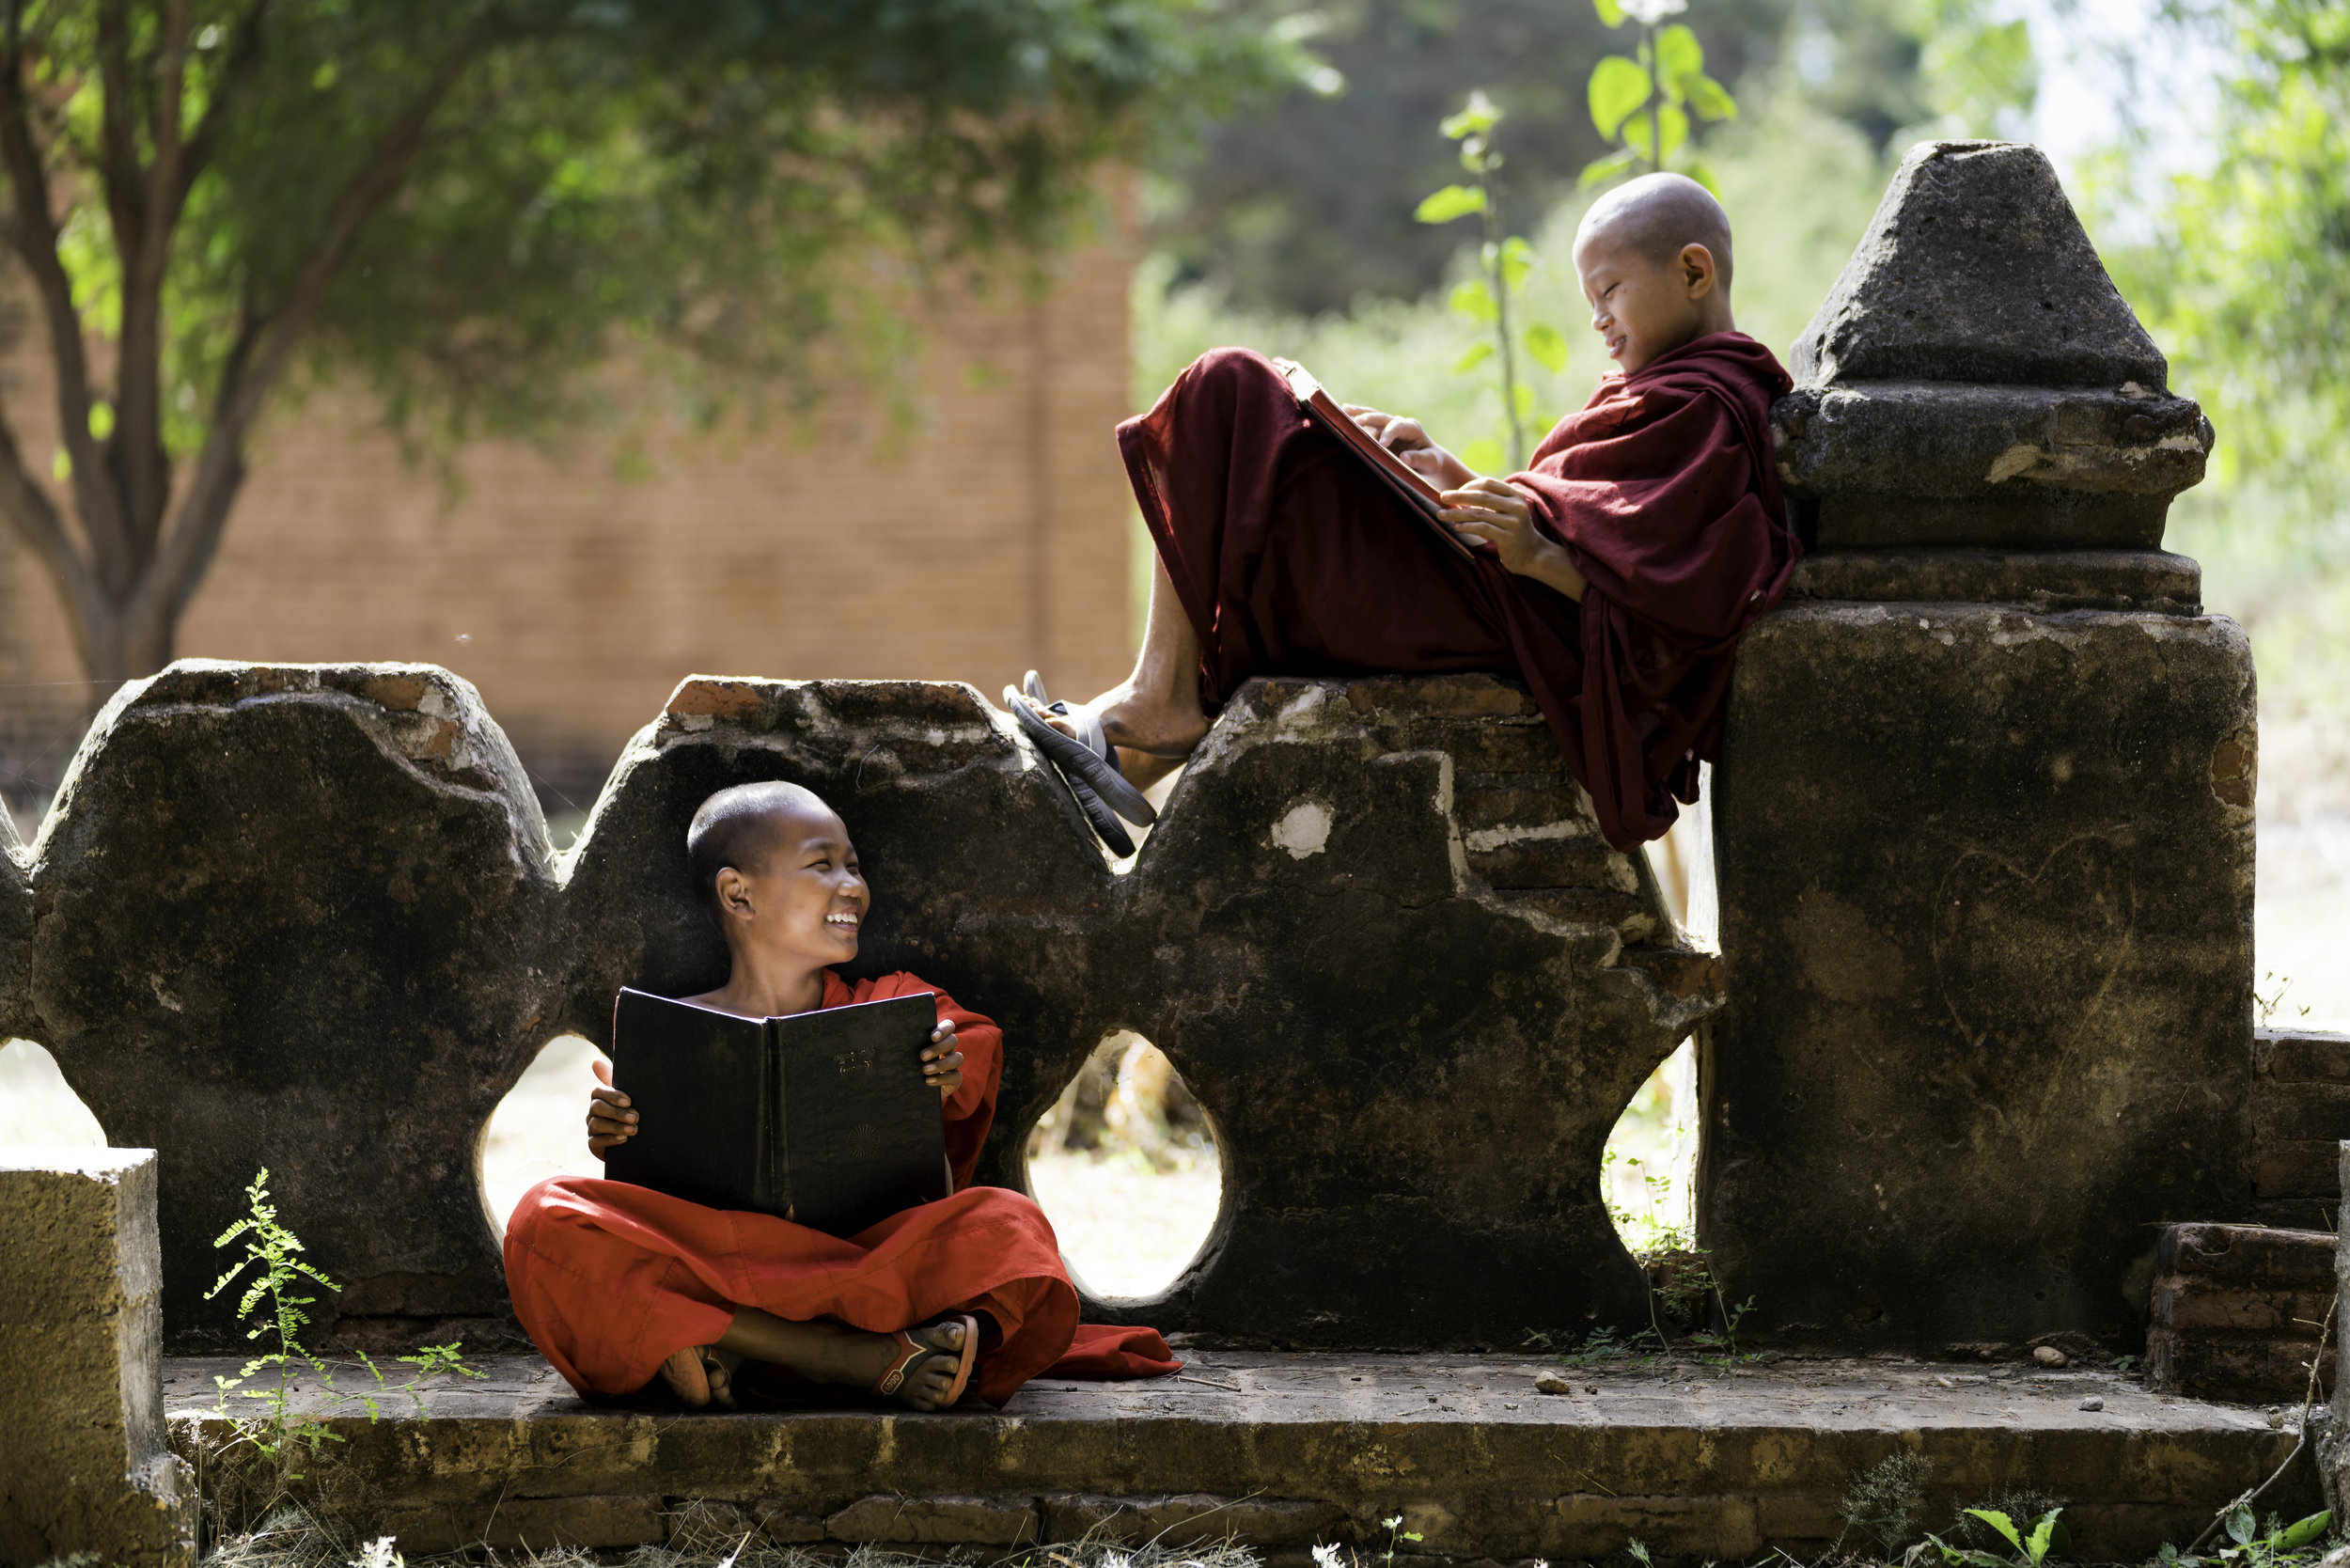 A Slice of Life in Bagan!  Visit the local temples in the hopes of catching a slice of the local life.